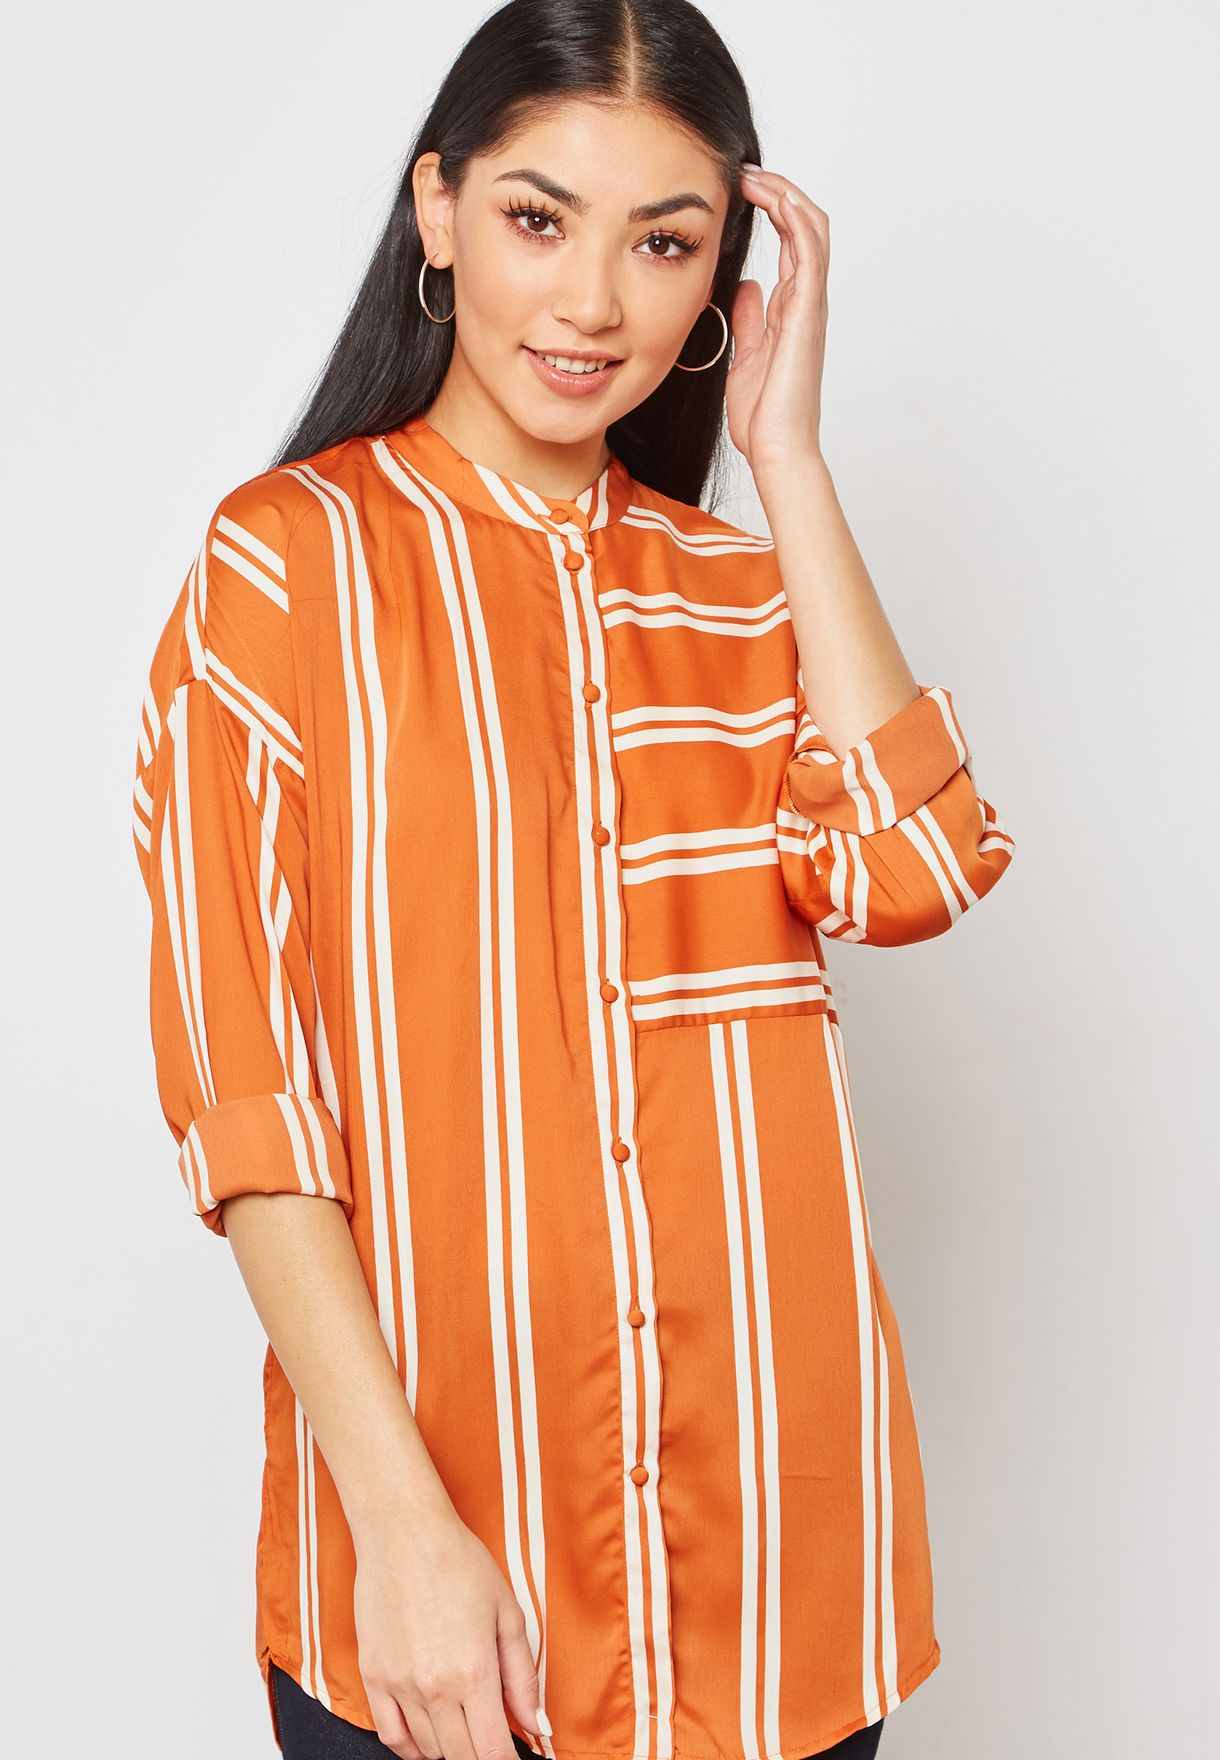 439d9b6d9c Shop Vero Moda orange Striped Longline Shirt 10210856 for Women in ...